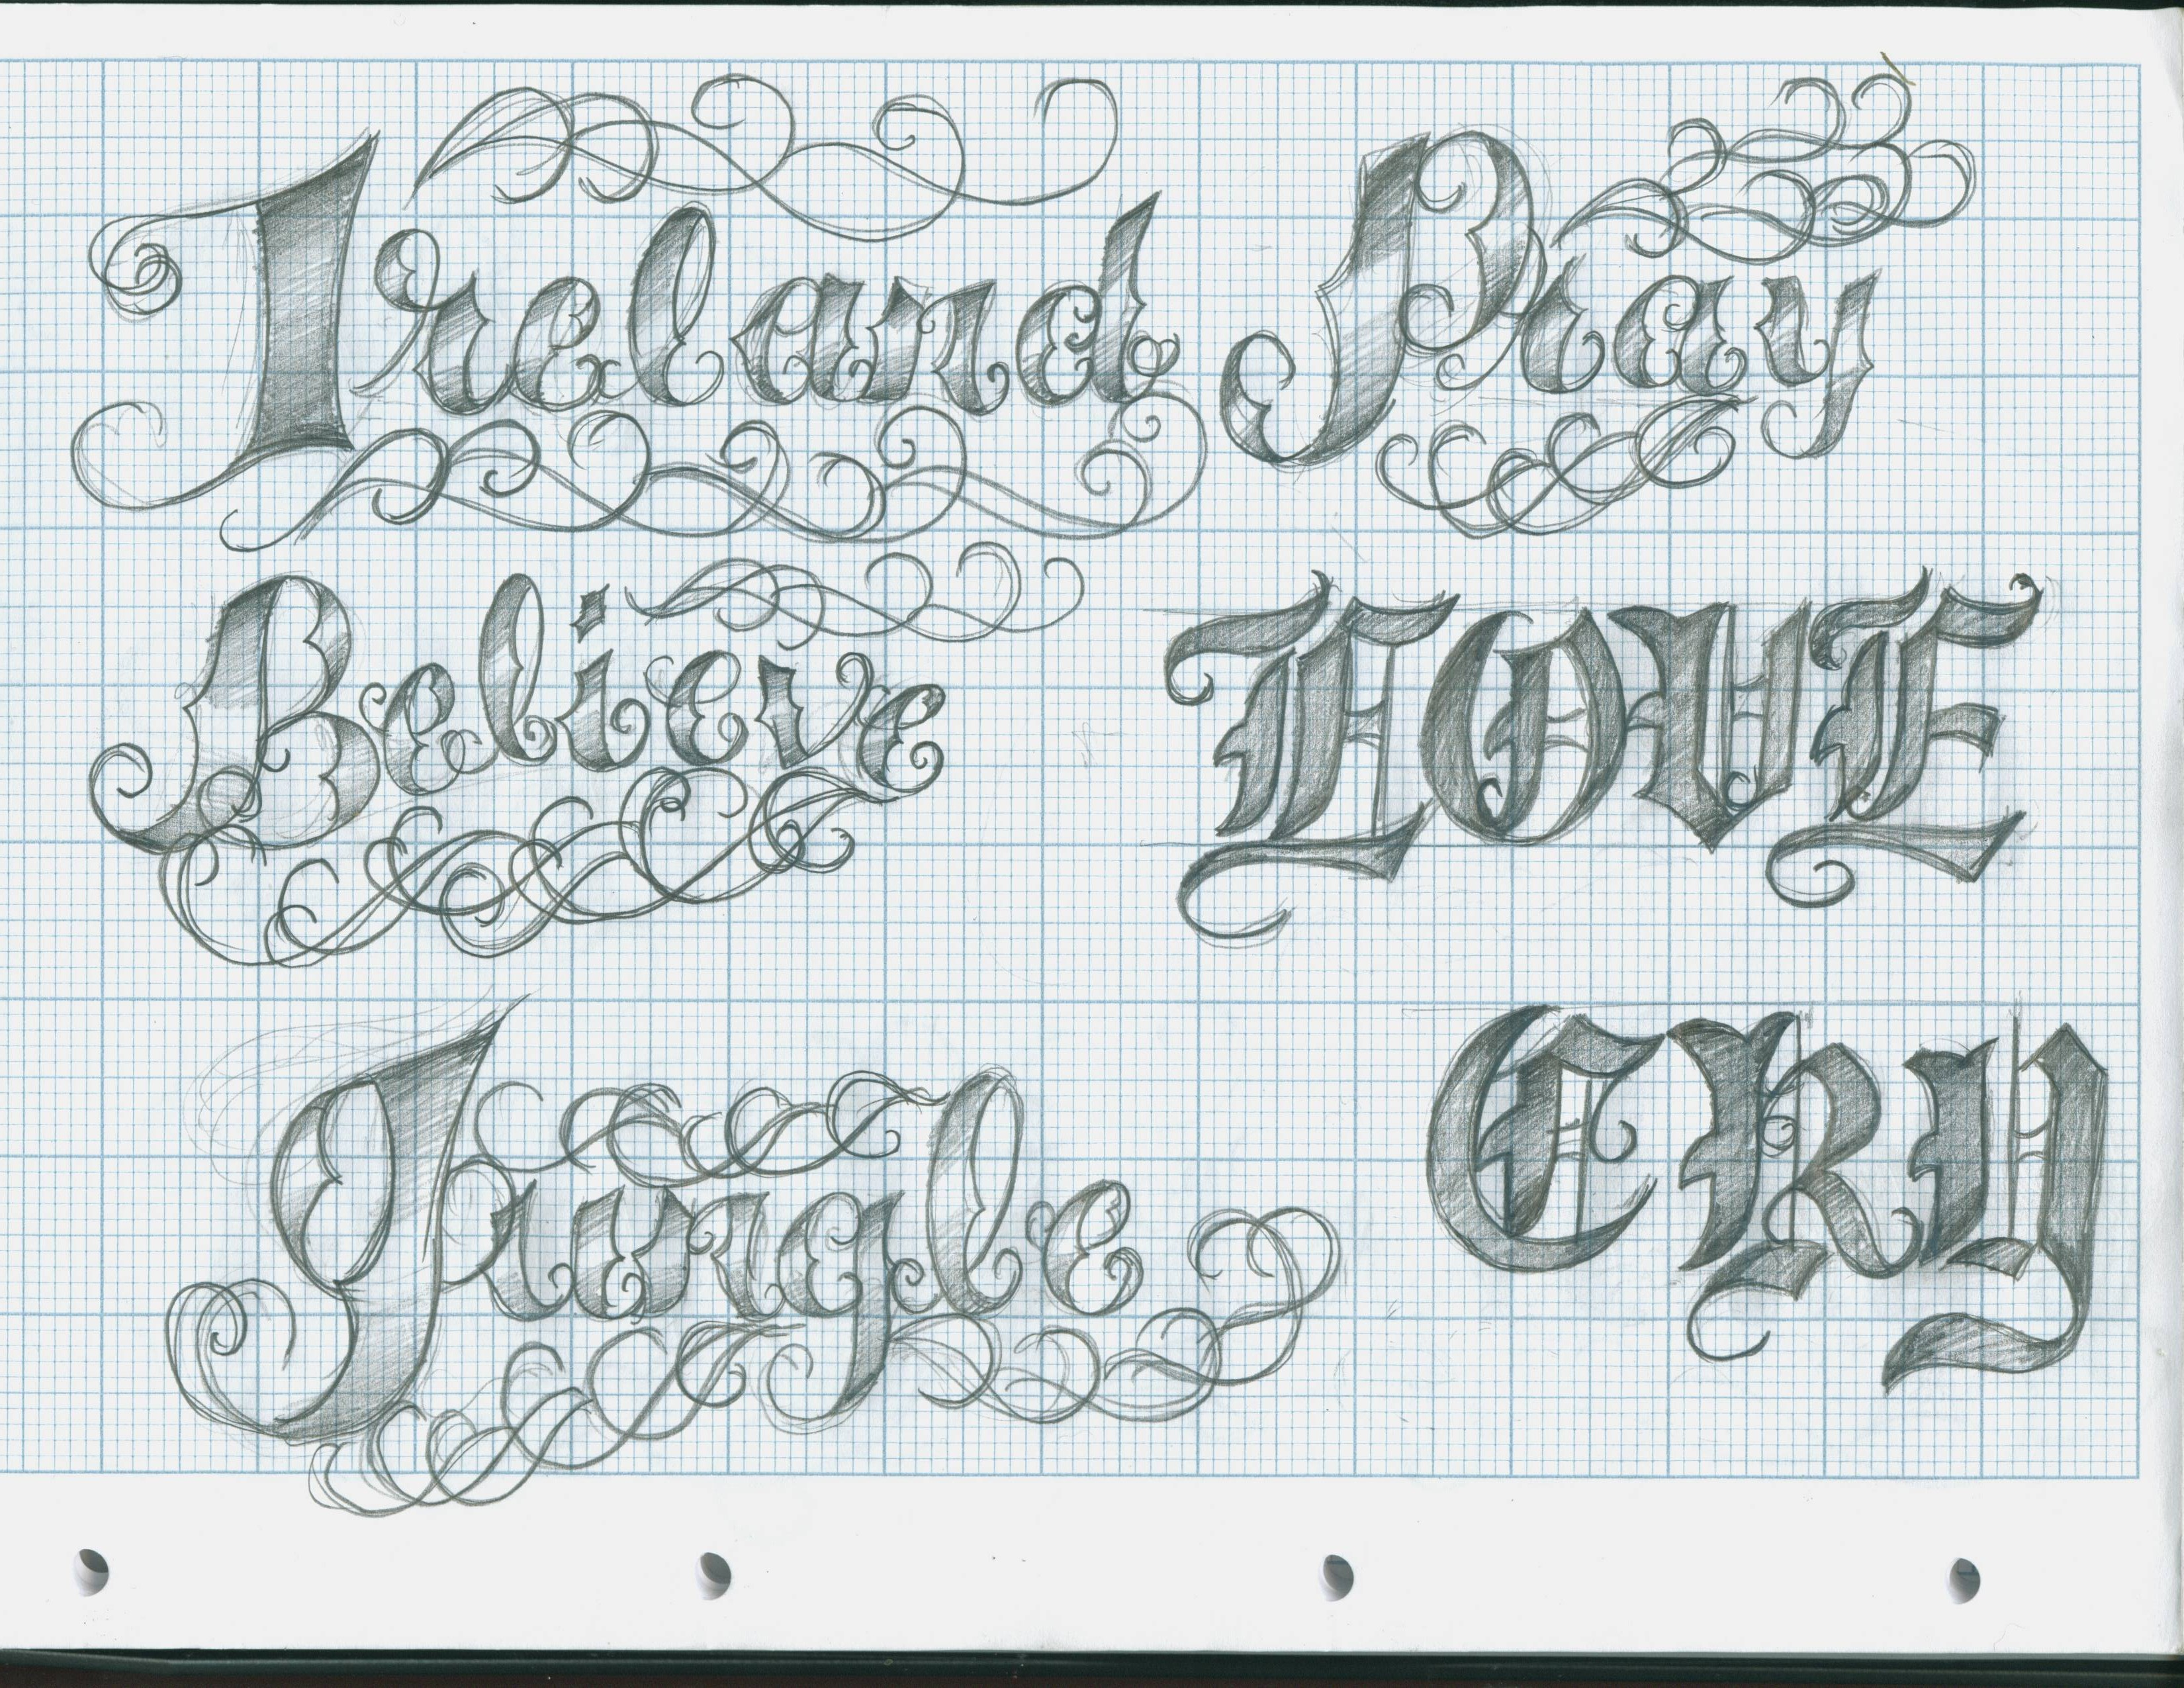 ... 3300 × 2550 in 108 Tattoo Lettering Designs . ← Previous Next